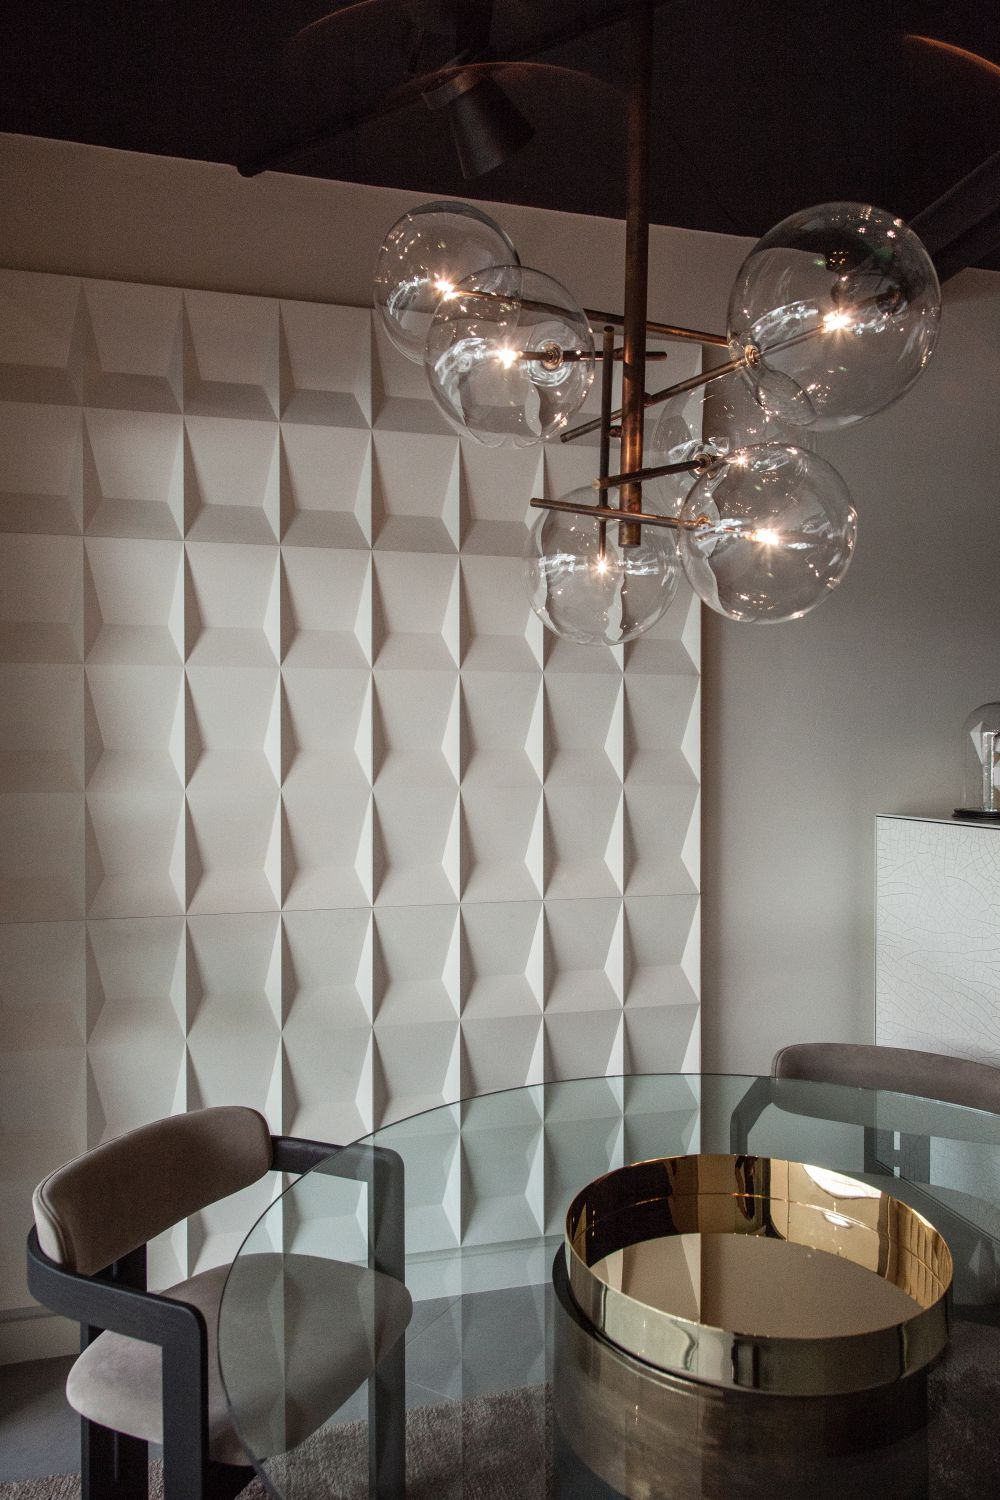 1560941273 734 fun wall designs to turn a blank space into a terrific decor element - Fun Wall Designs To Turn a Blank Space into a Terrific Decor Element